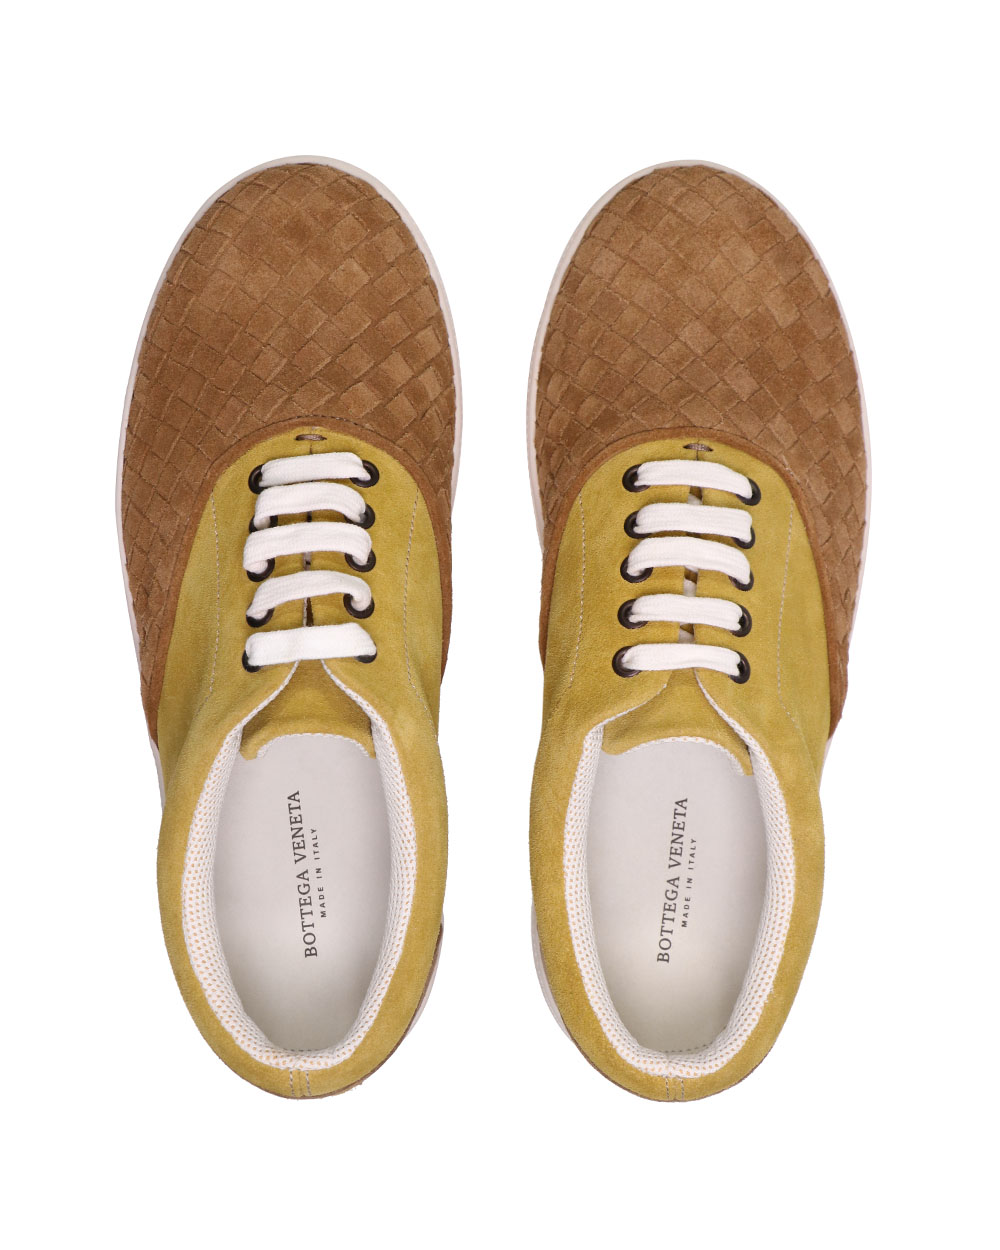 Woven Suede Sneakers 3